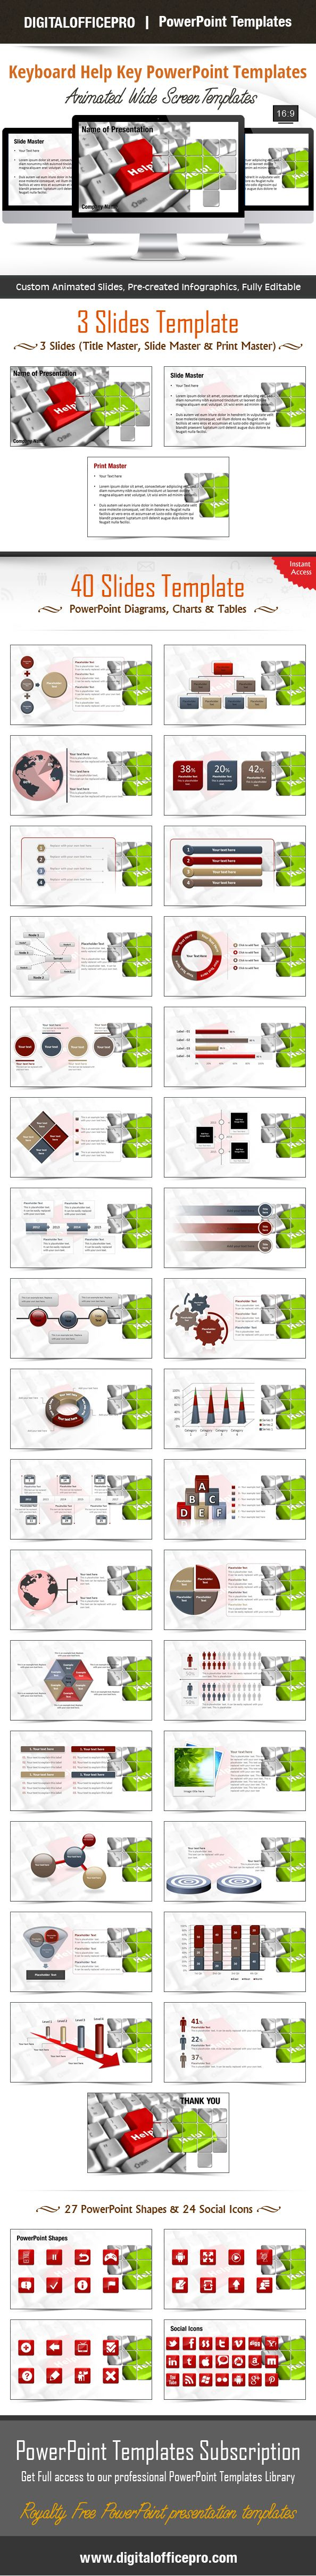 31 best communication powerpoint templates images on pinterest impress and engage your audience with keyboard help key powerpoint template and keyboard help key powerpoint toneelgroepblik Choice Image